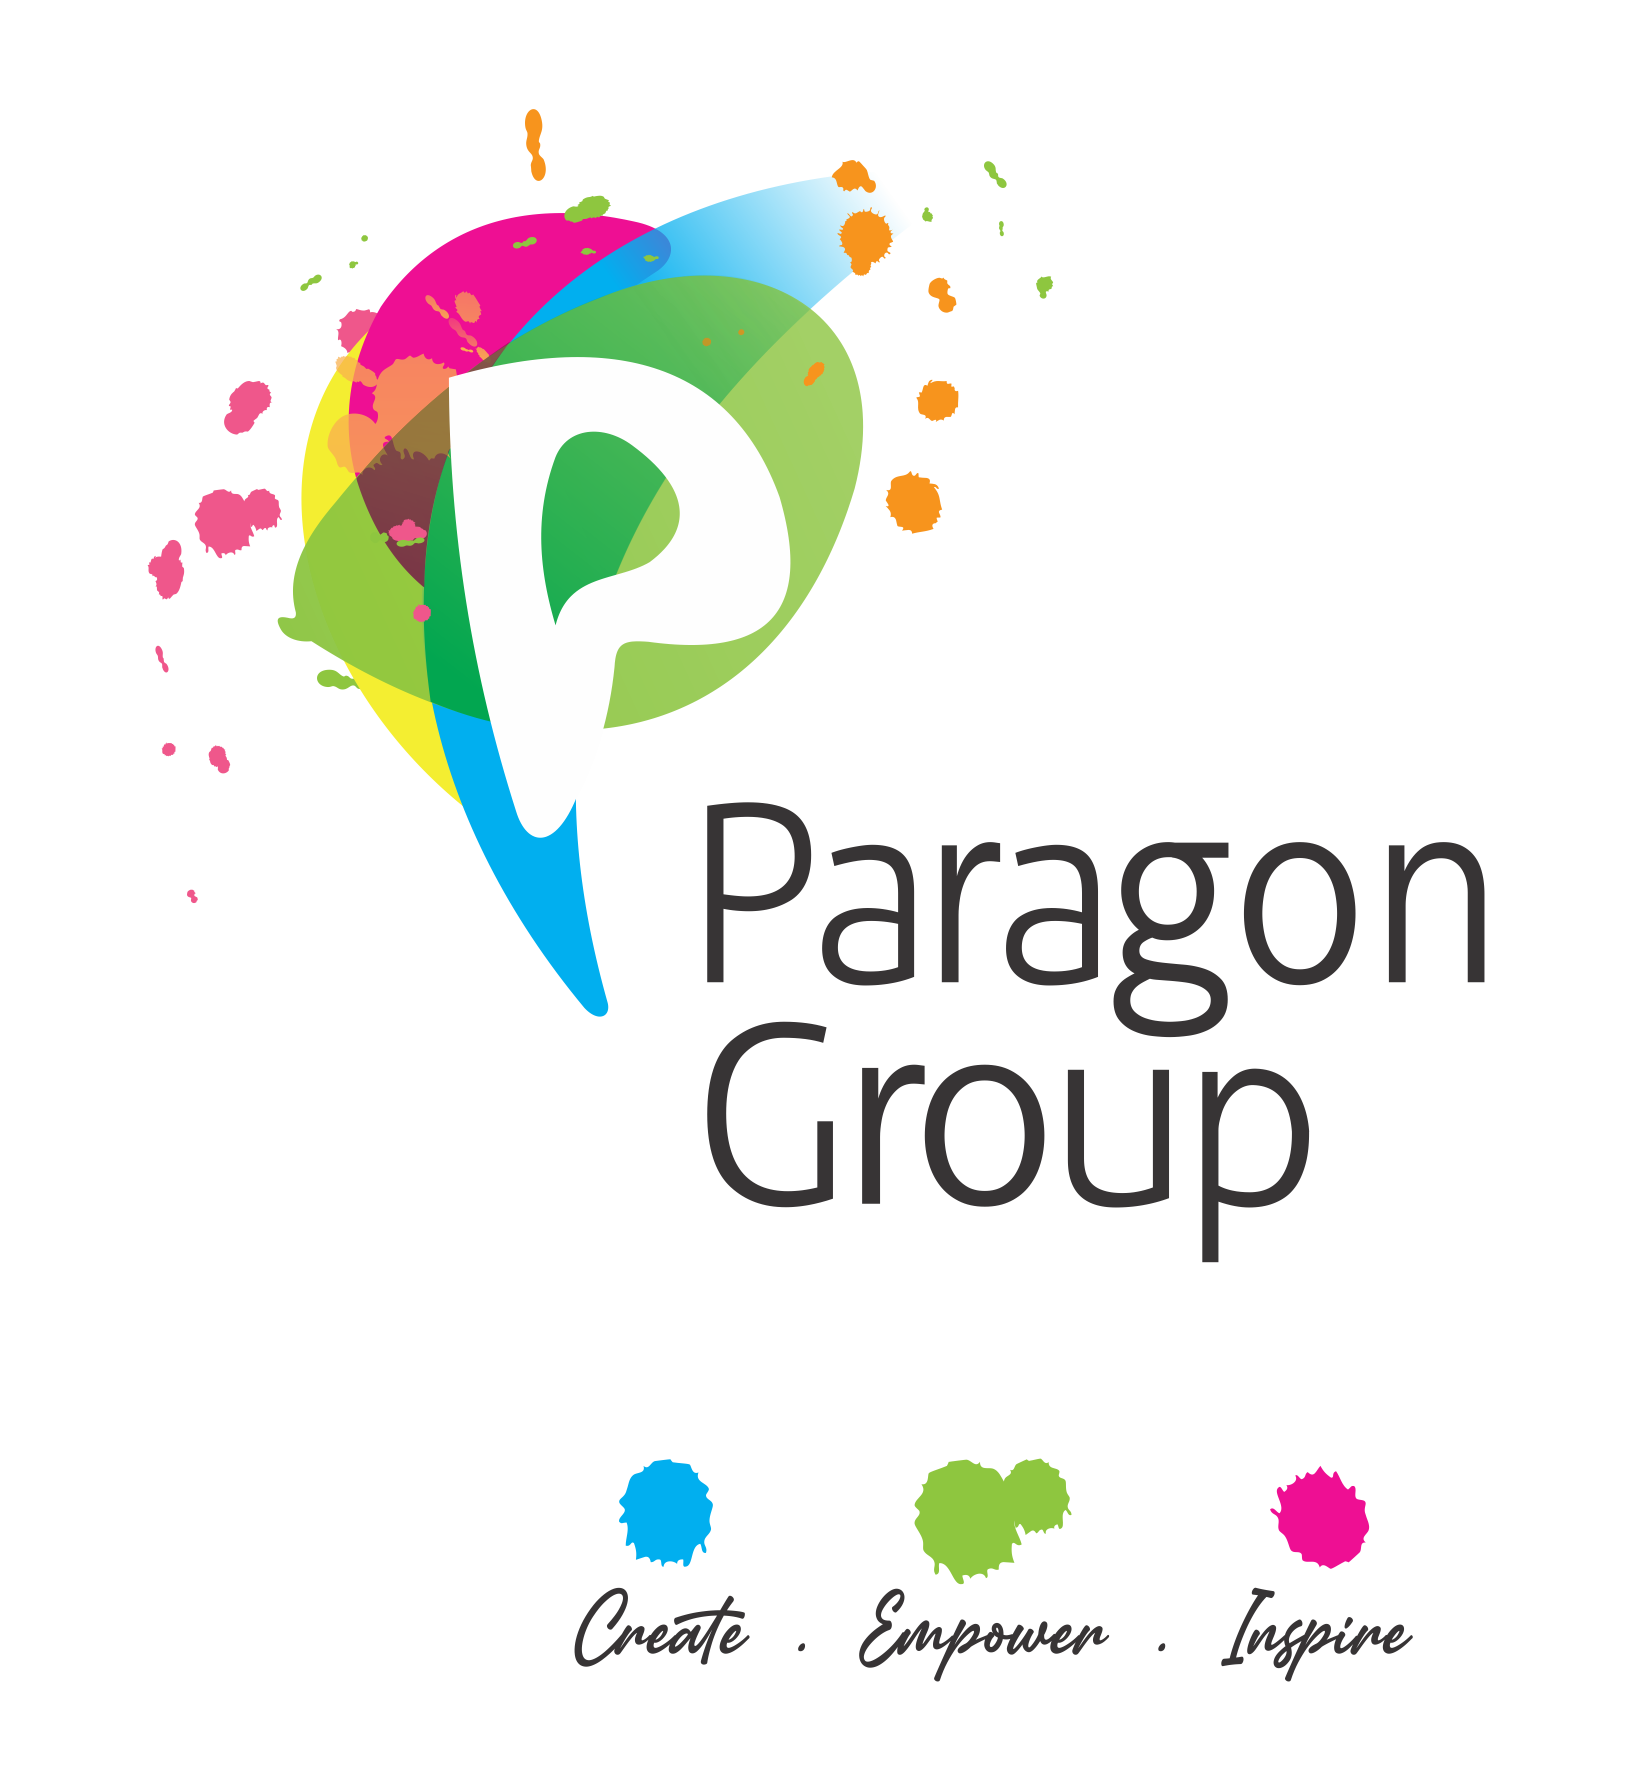 Paragon Group Logo without background